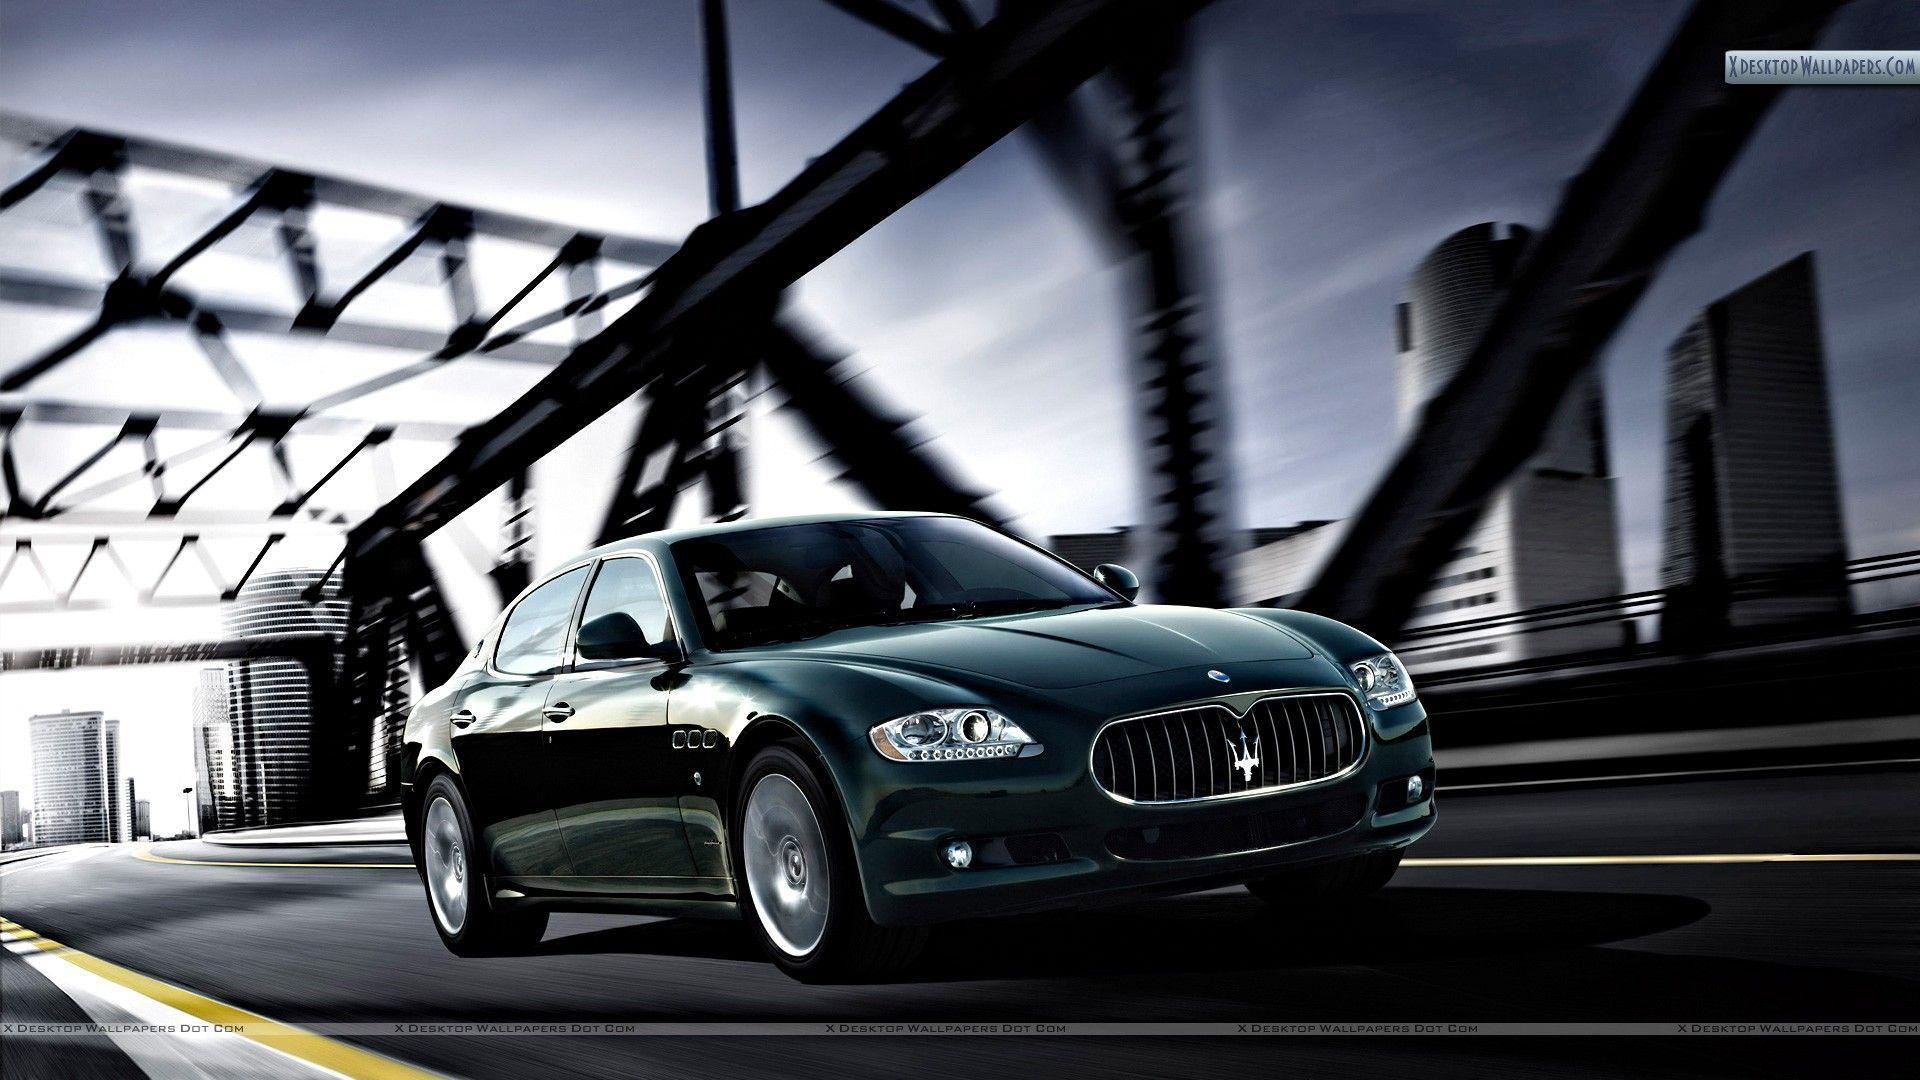 Maserati Quattroporte Wallpapers, Photos & Images in HD